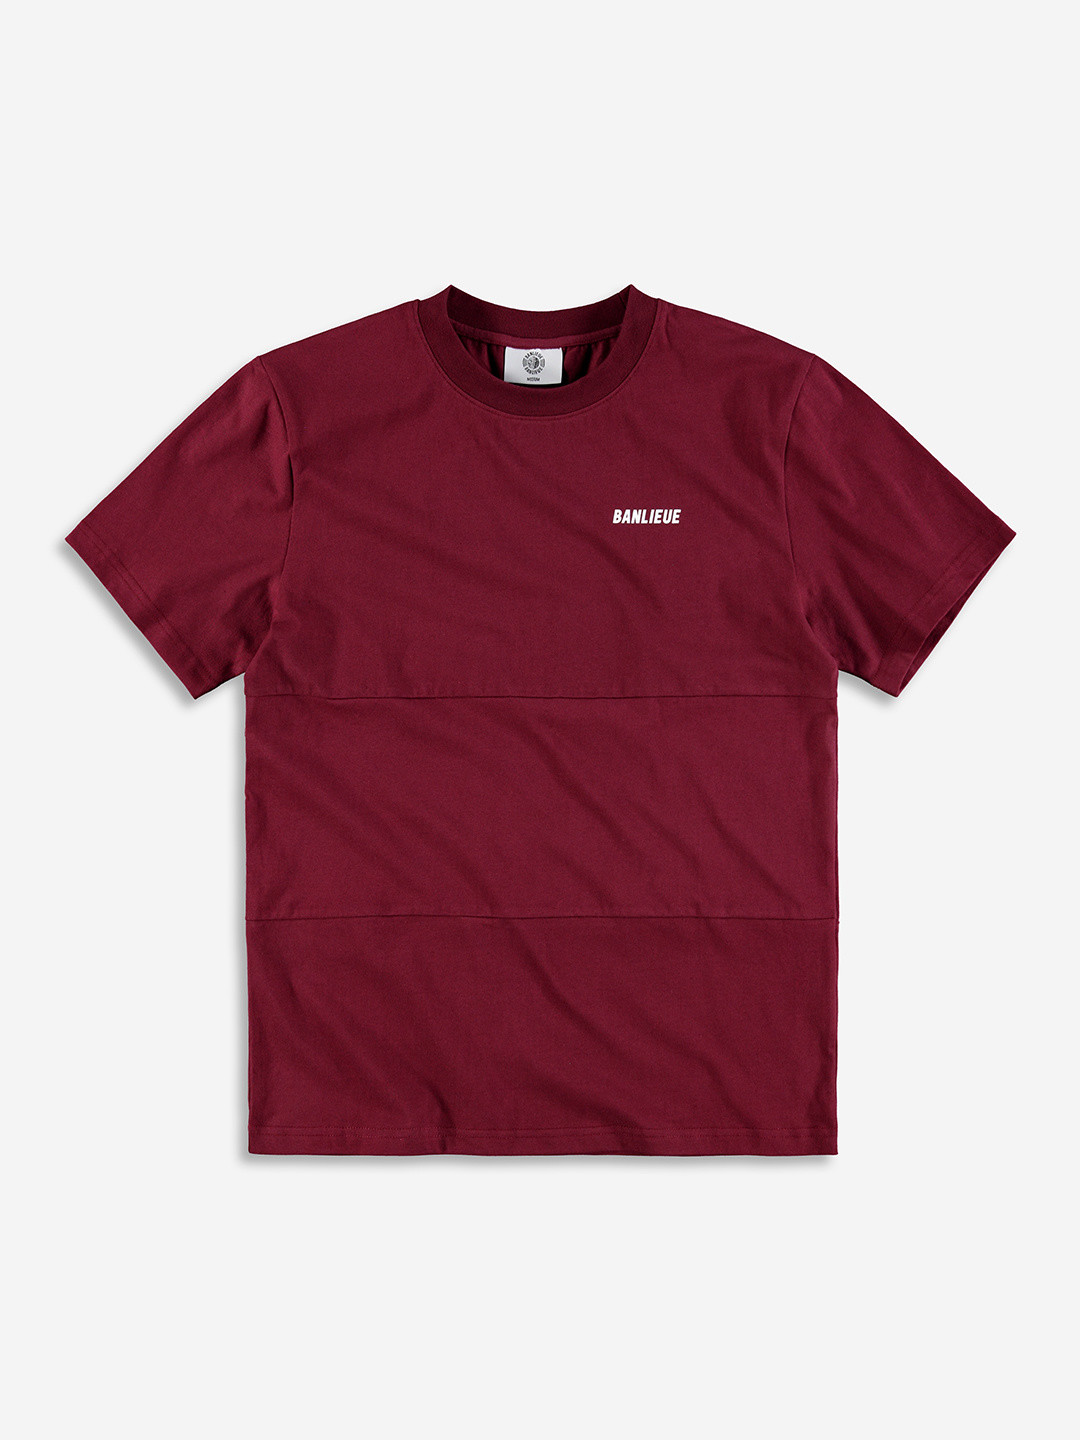 TXT T-SHIRT BURGUNDY